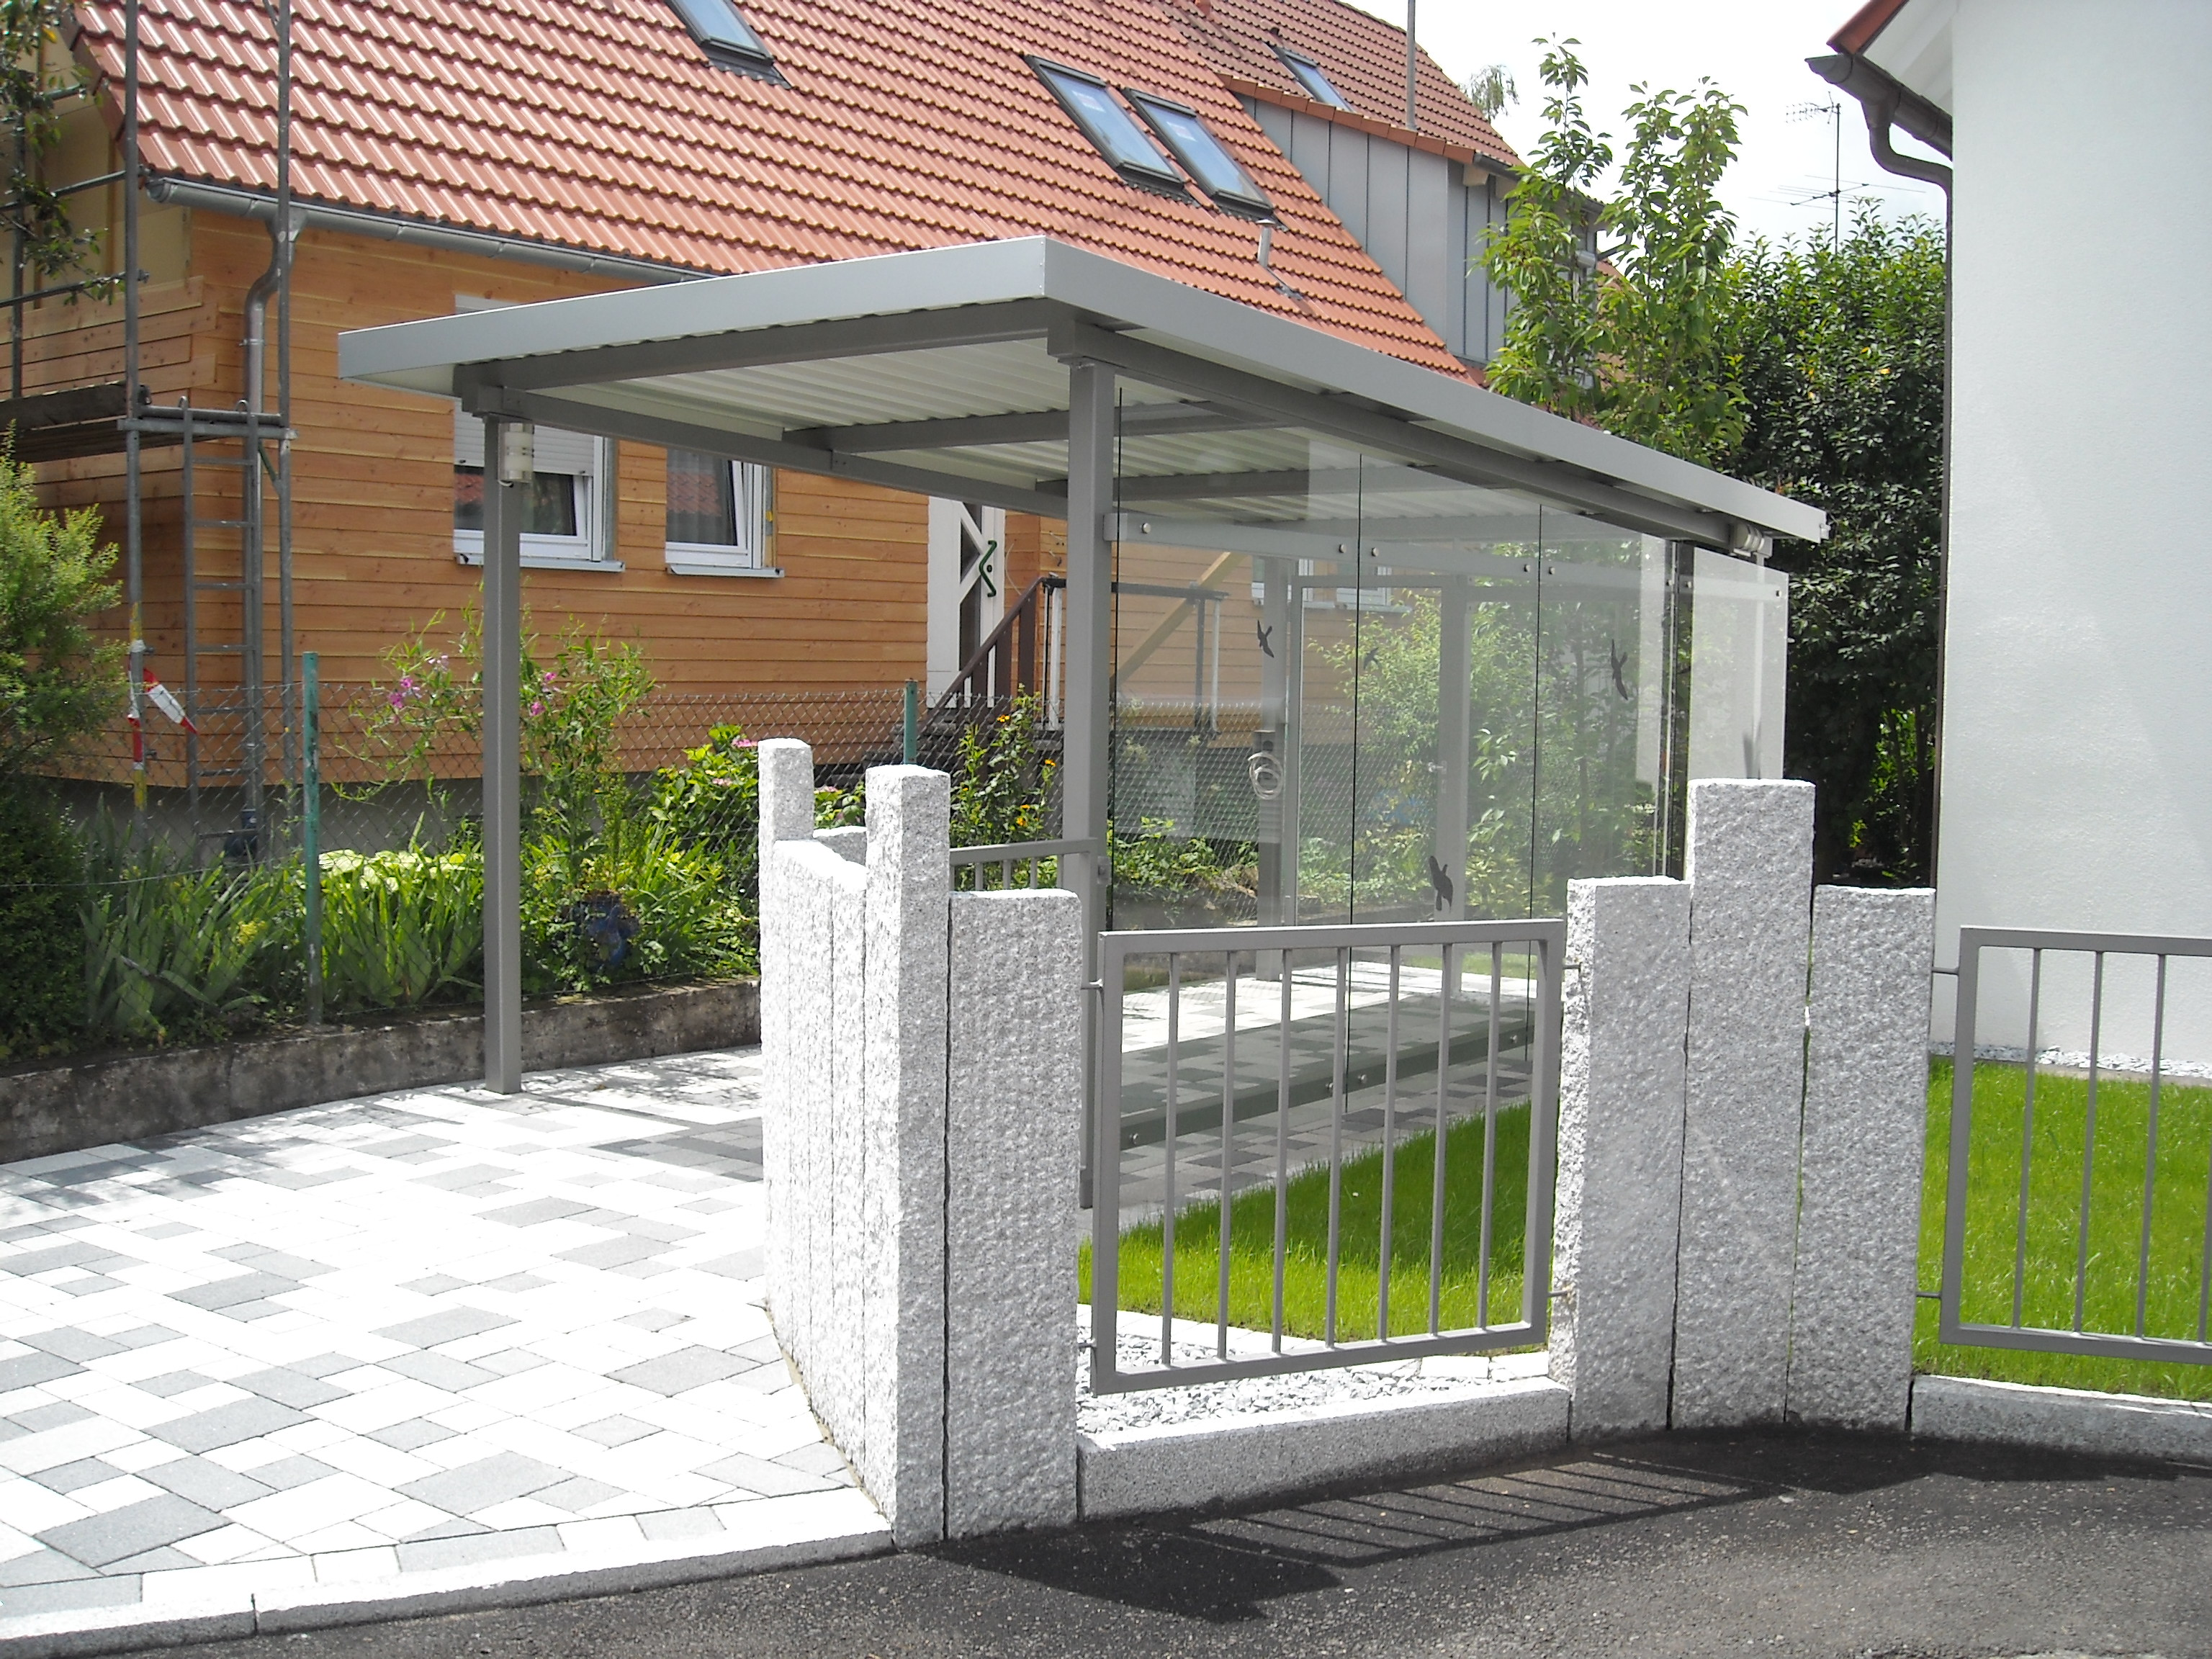 carport mit wandverkleidung aus glas stahlbau n gele. Black Bedroom Furniture Sets. Home Design Ideas